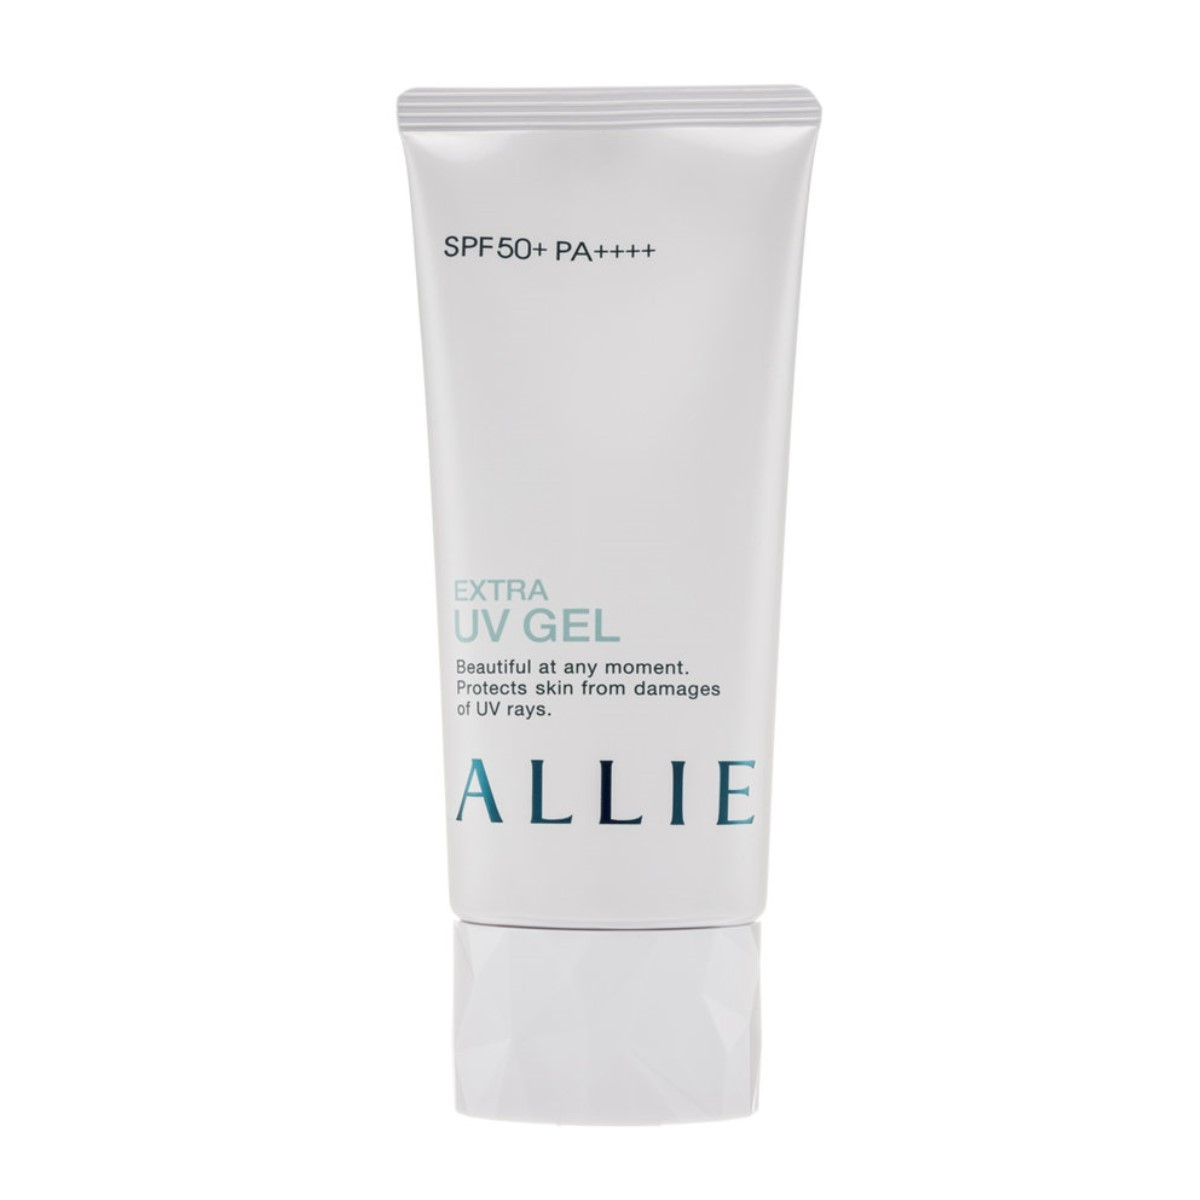 Kanebo ALLIE Extra UV Gel SPF50